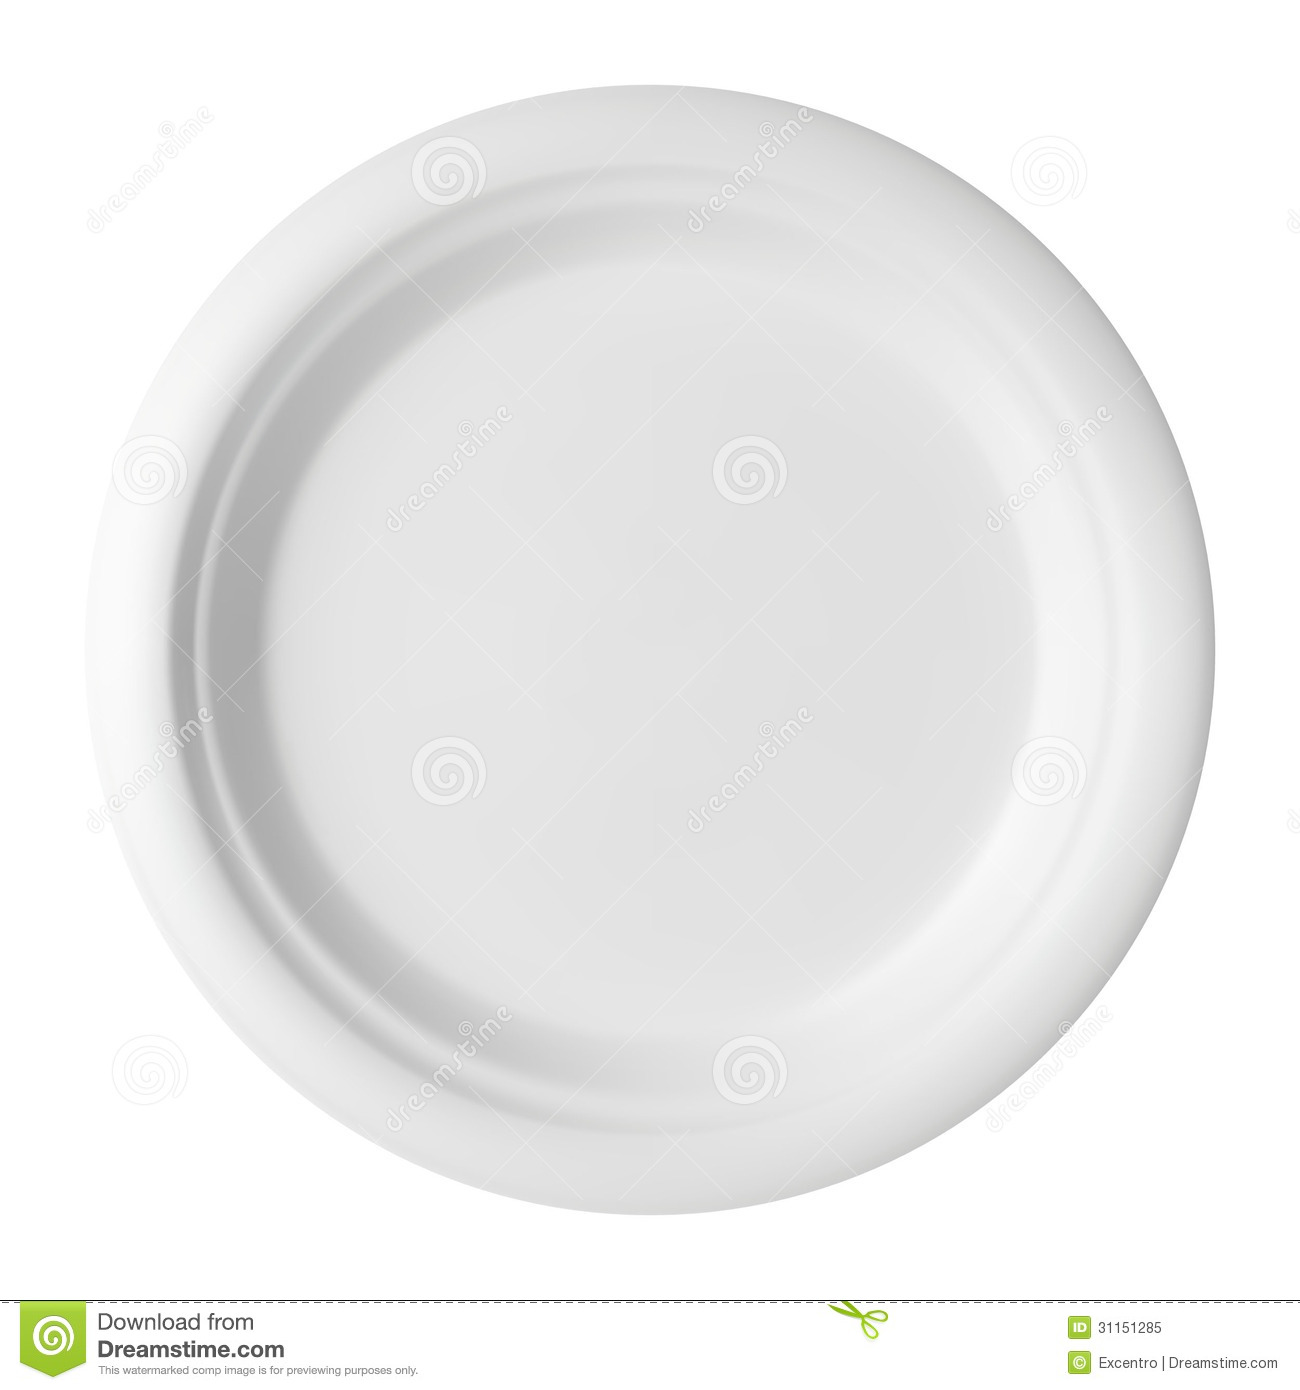 Empty plate stock vector. Image of kitchen, dishware ...